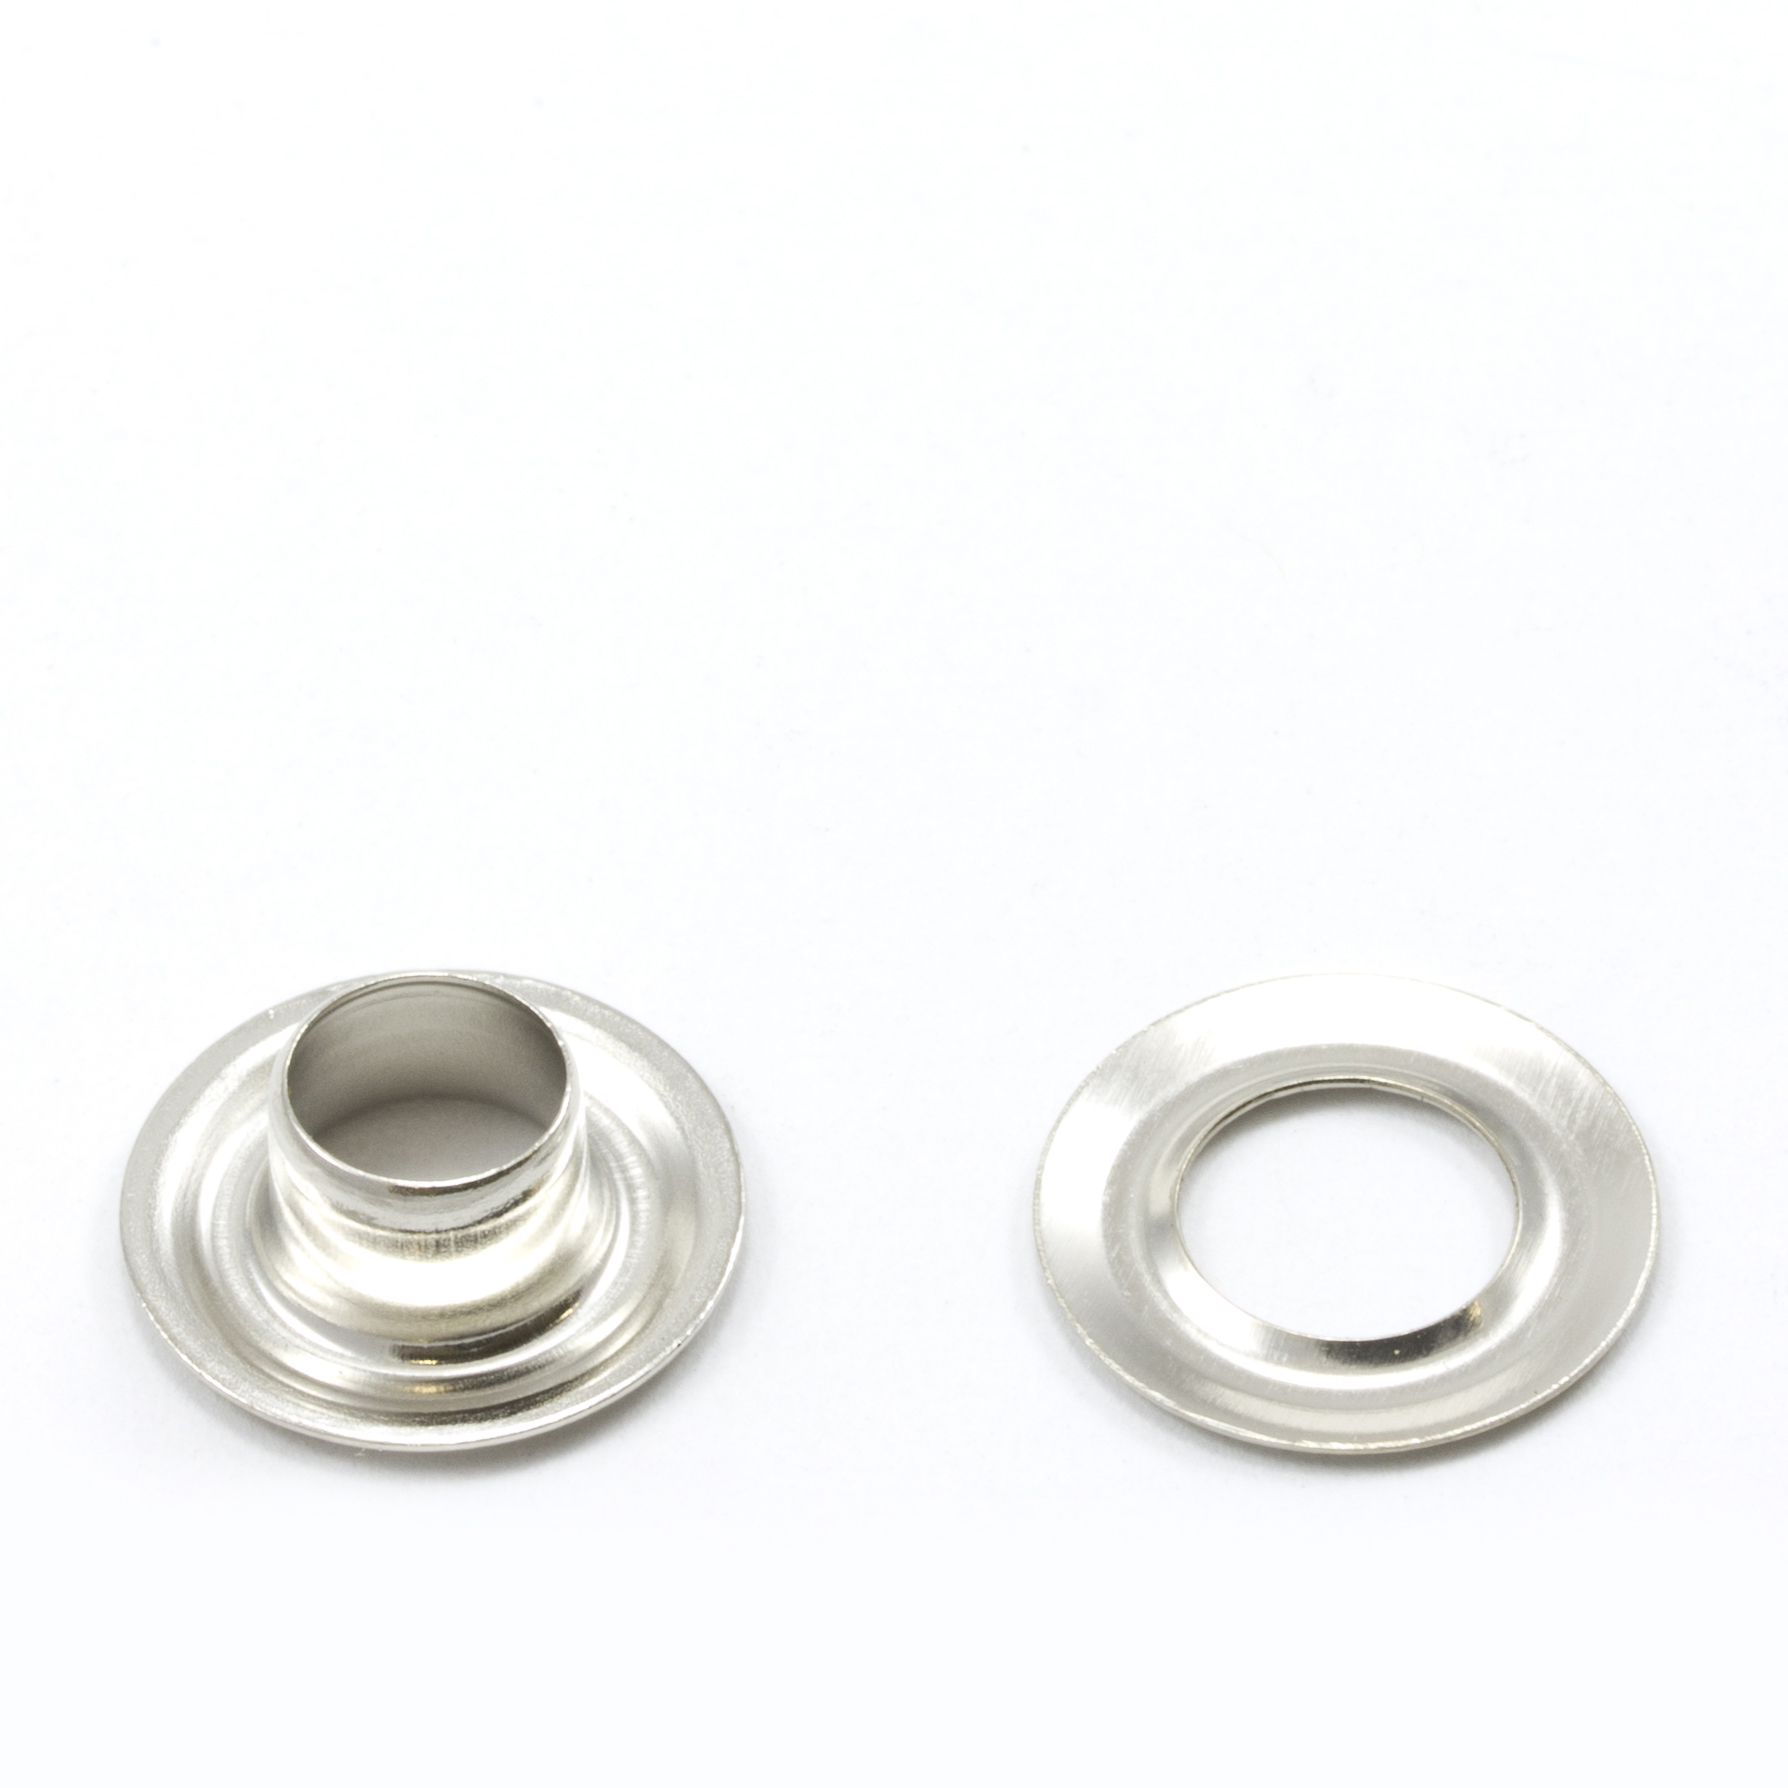 Grommet with Plain Washer #0 Brass Nickel Plated 1/4